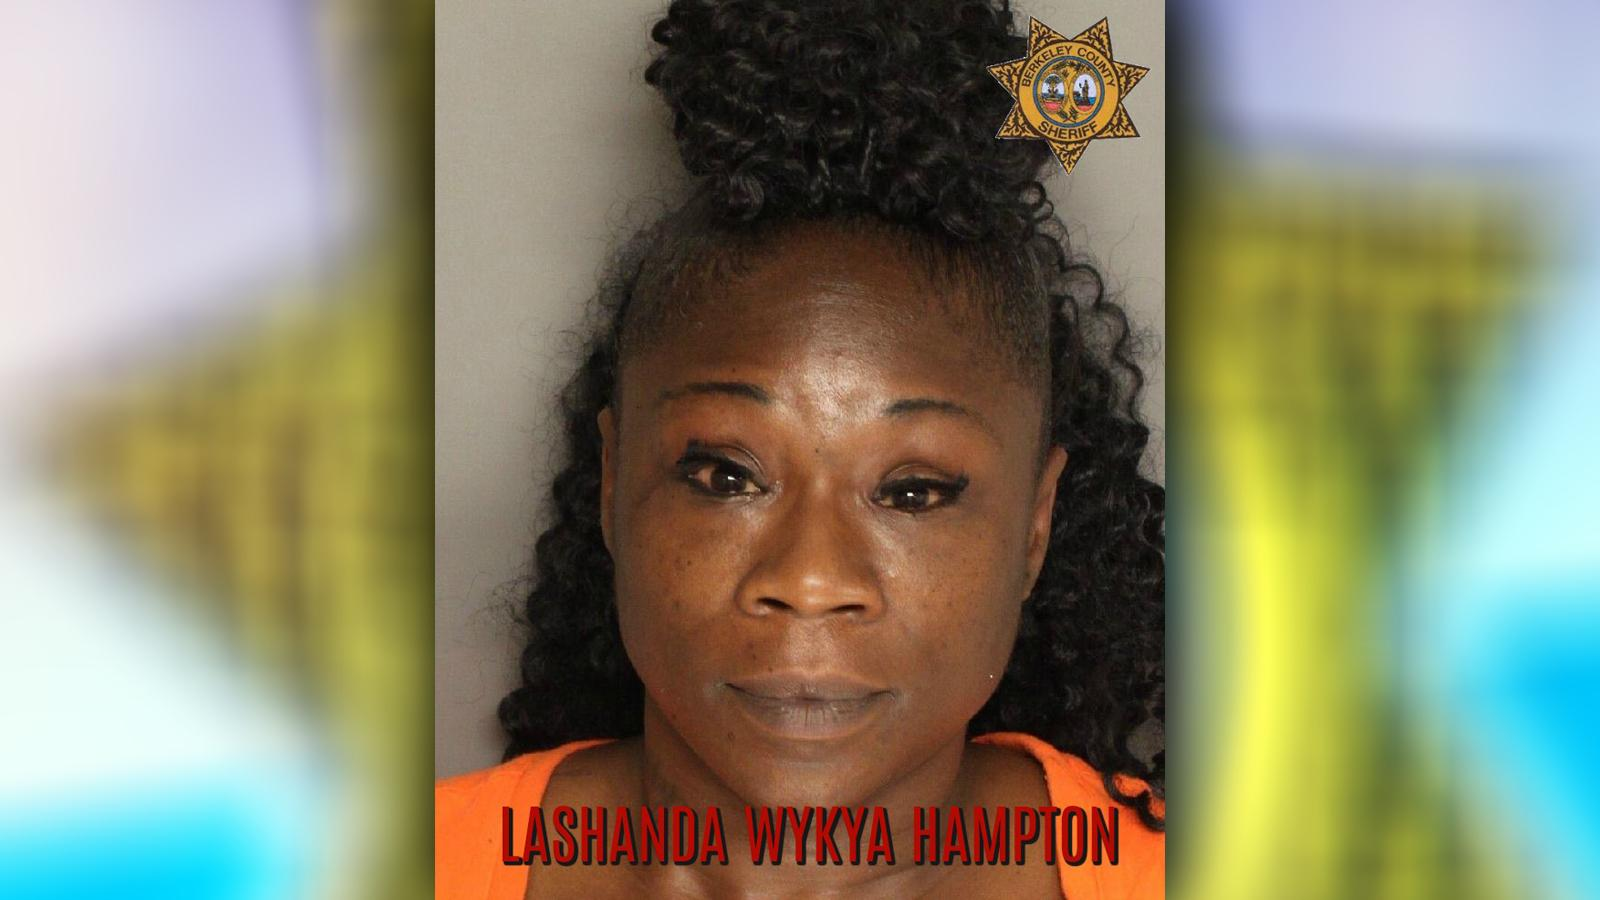 •	Lashanda Wykya Hampton Bench Warrants- Simple Possession of Marijuana & Possession of Drug Paraphernalia Hold for: Orangeburg County